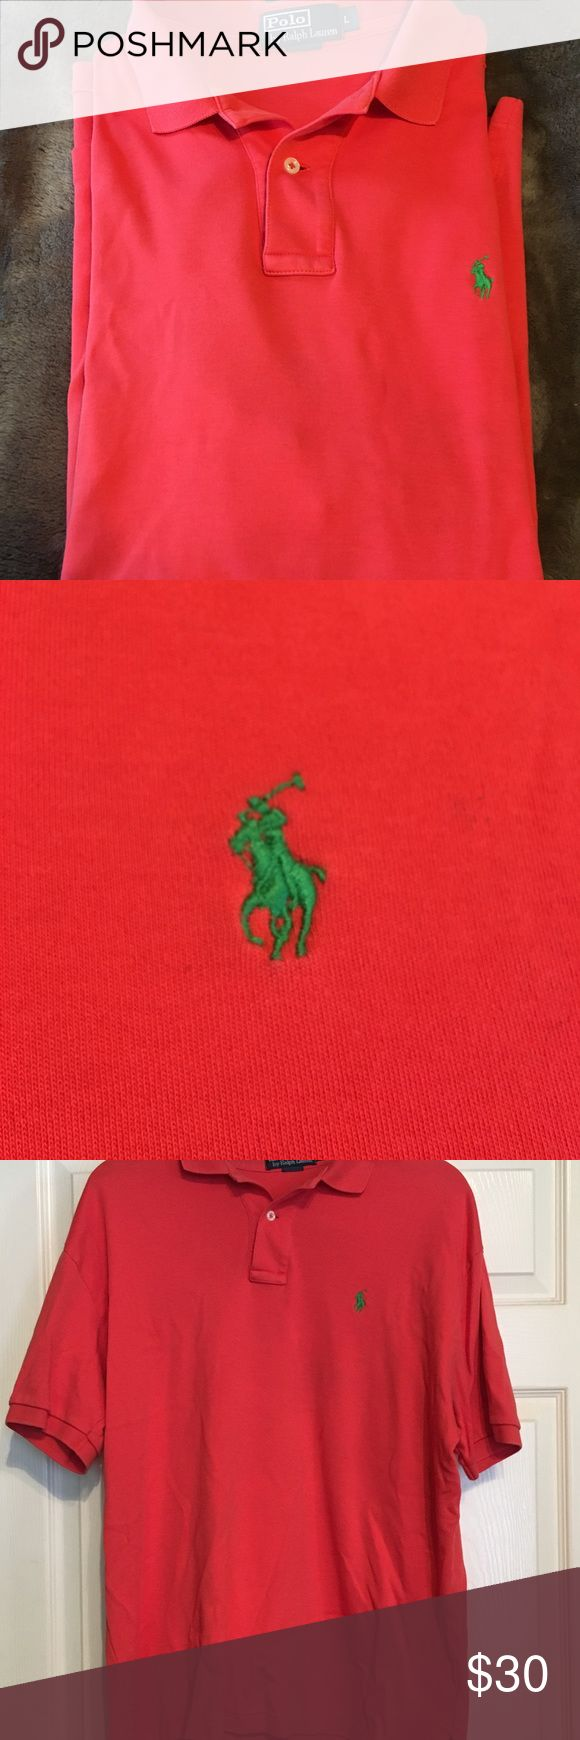 Men's short sleeve Polo Hardly worn men's Polo, short sleeve. Coral with green polo horse Polo by Ralph Lauren Shirts Polos